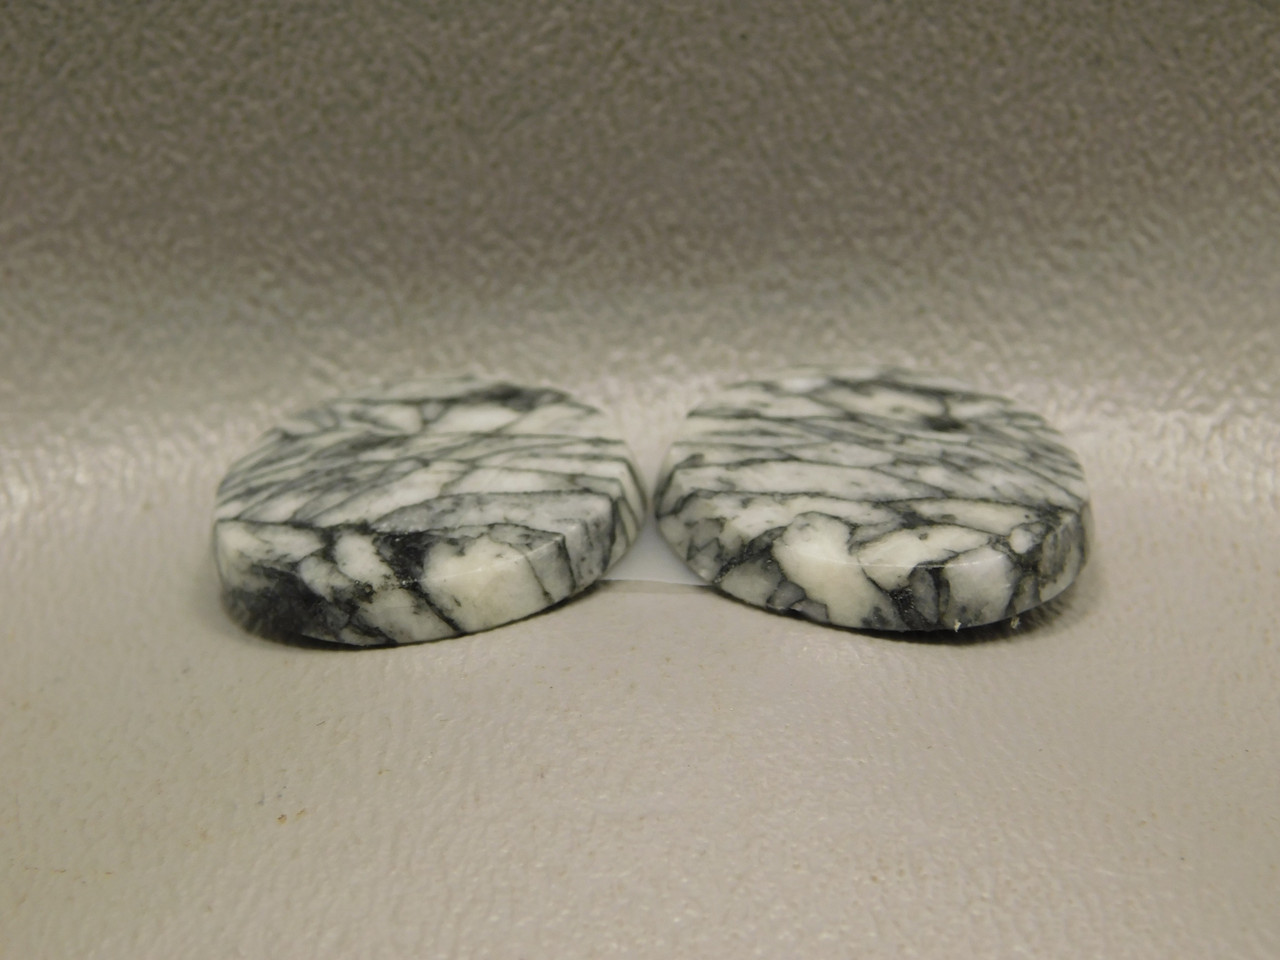 Pinolith or Pinolite Rounds Matched Pairs Stone Cabochons #10